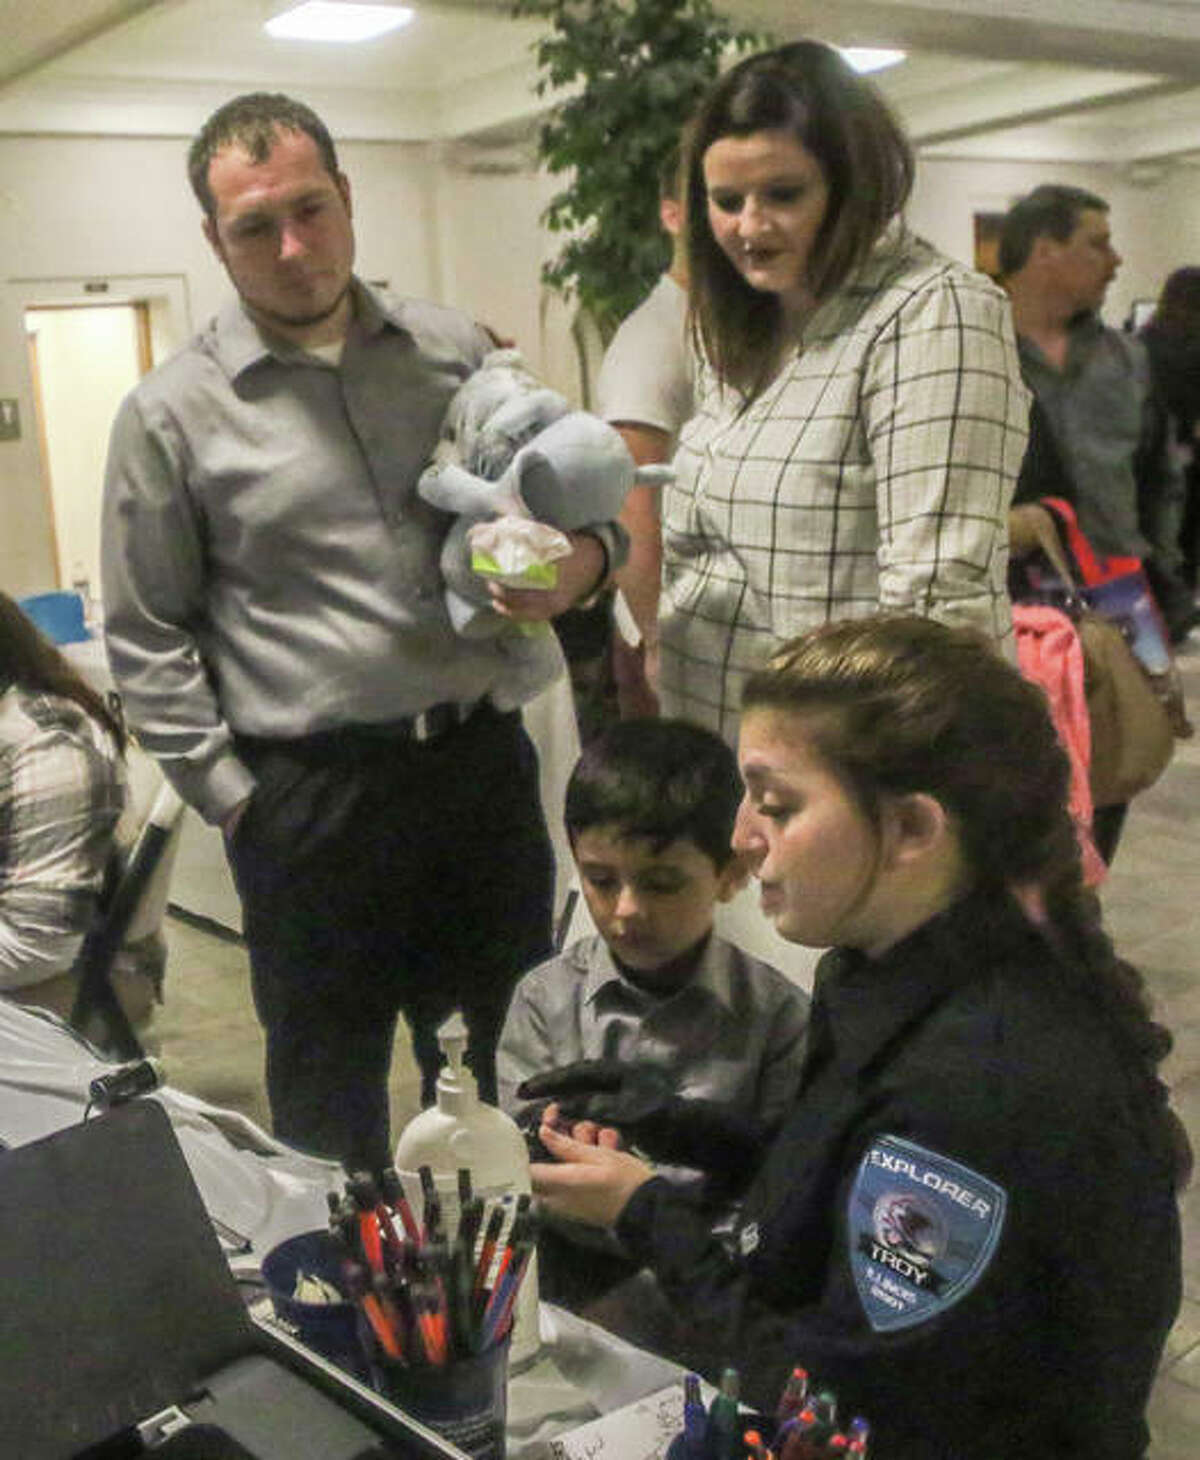 Ryder Marsh is fingerprinted by a police officer with the Explorer Project, based in Troy, Saturday during the National Day of Adoption even held at the Madison County Courthouse. New father Erek Marsh and his biological mother Brandi Ingrham look on.